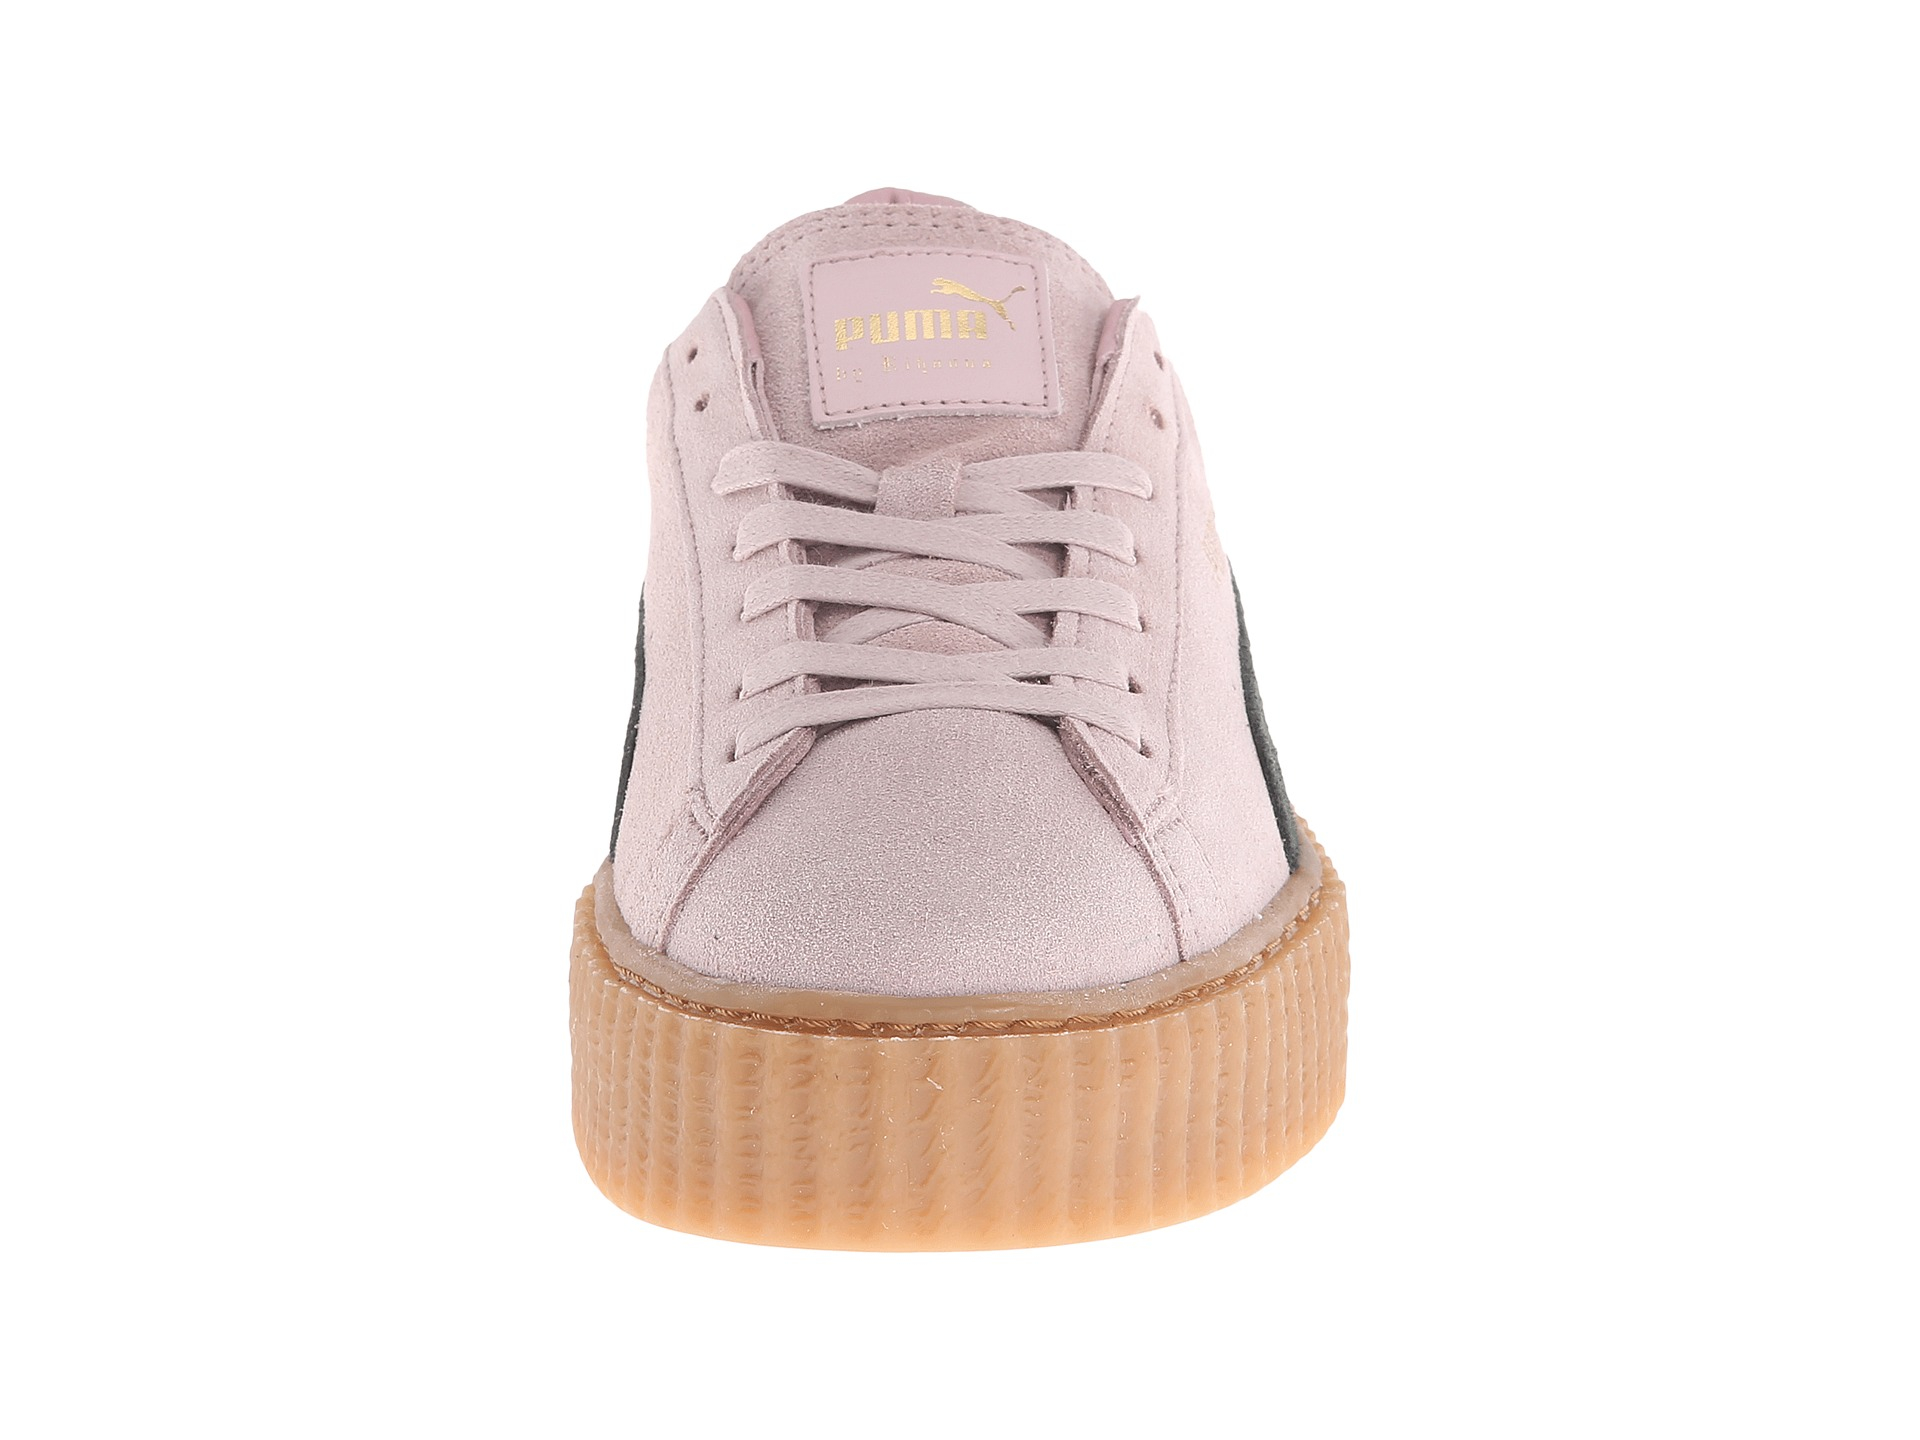 70bee0925d0a62 Lyst - PUMA Rihanna X Suede Creepers in Pink